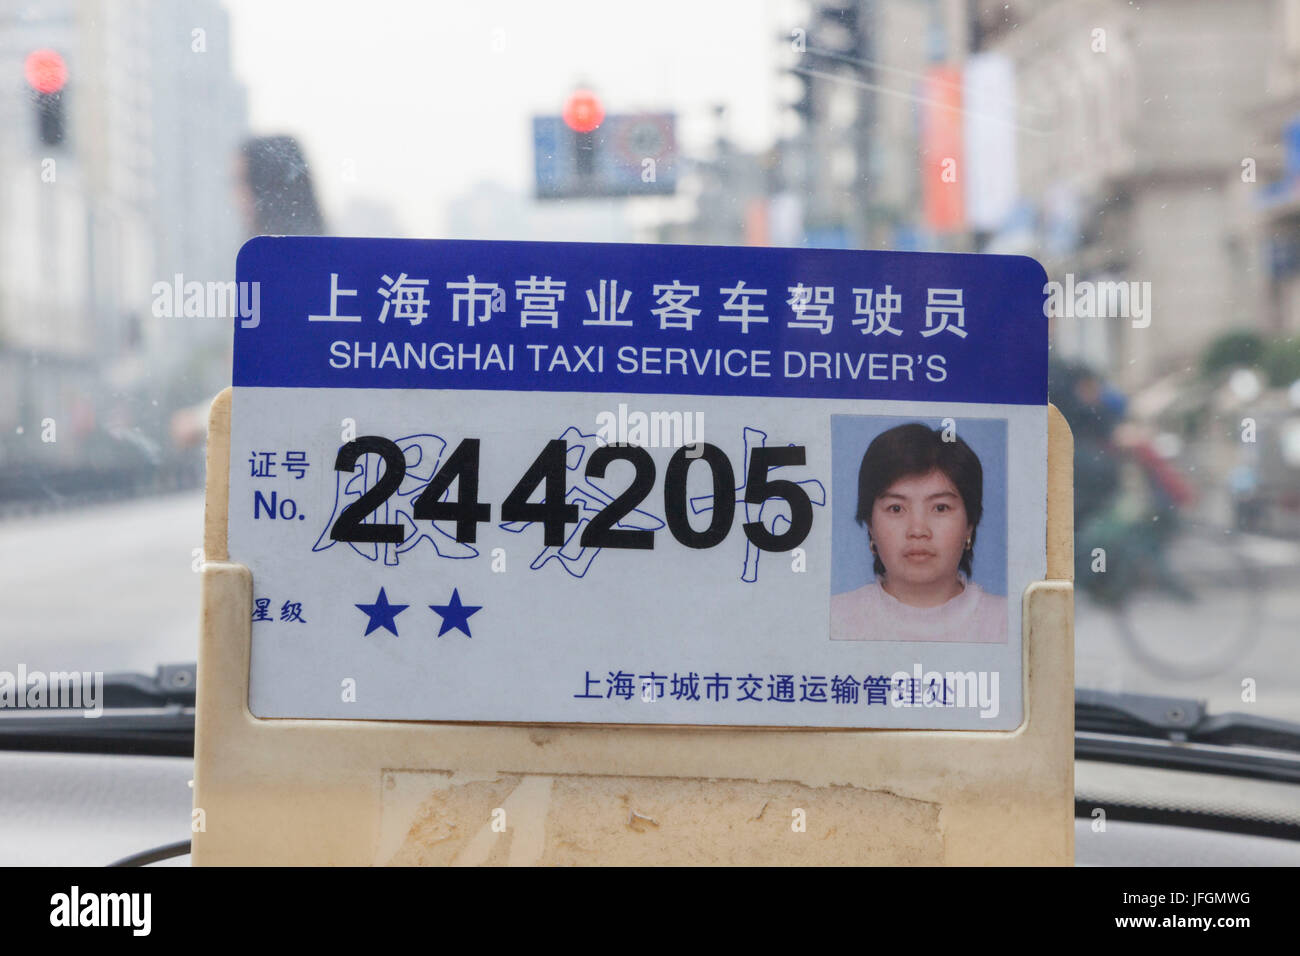 China, Shanghai, Female Taxi Driver's ID Card - Stock Image